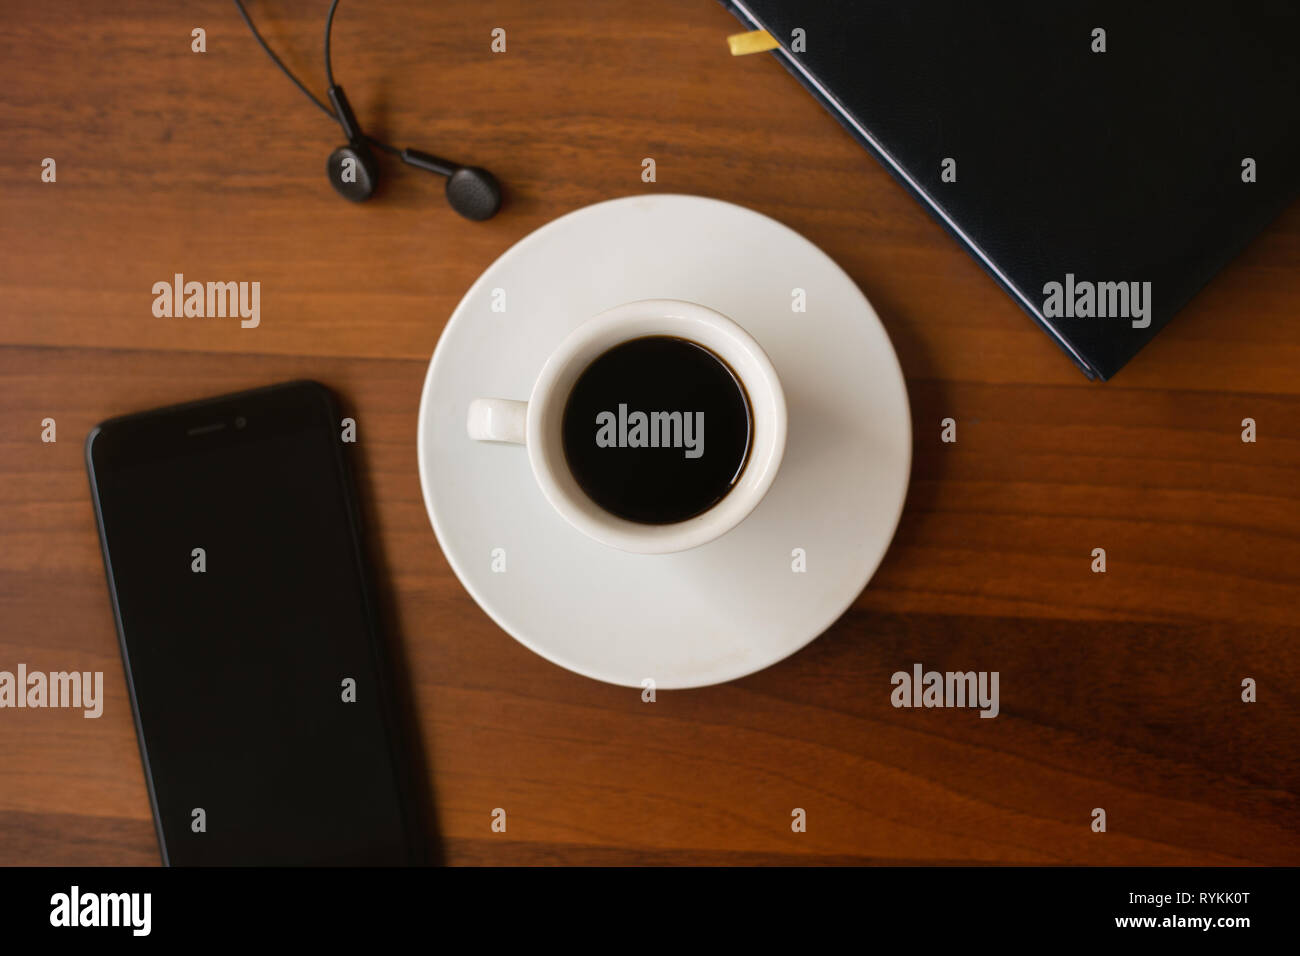 Top view Cup of Black Coffee (Espressino), Agenda, Earphones and Smartphone on a wooden table. Office Concept. - Stock Image